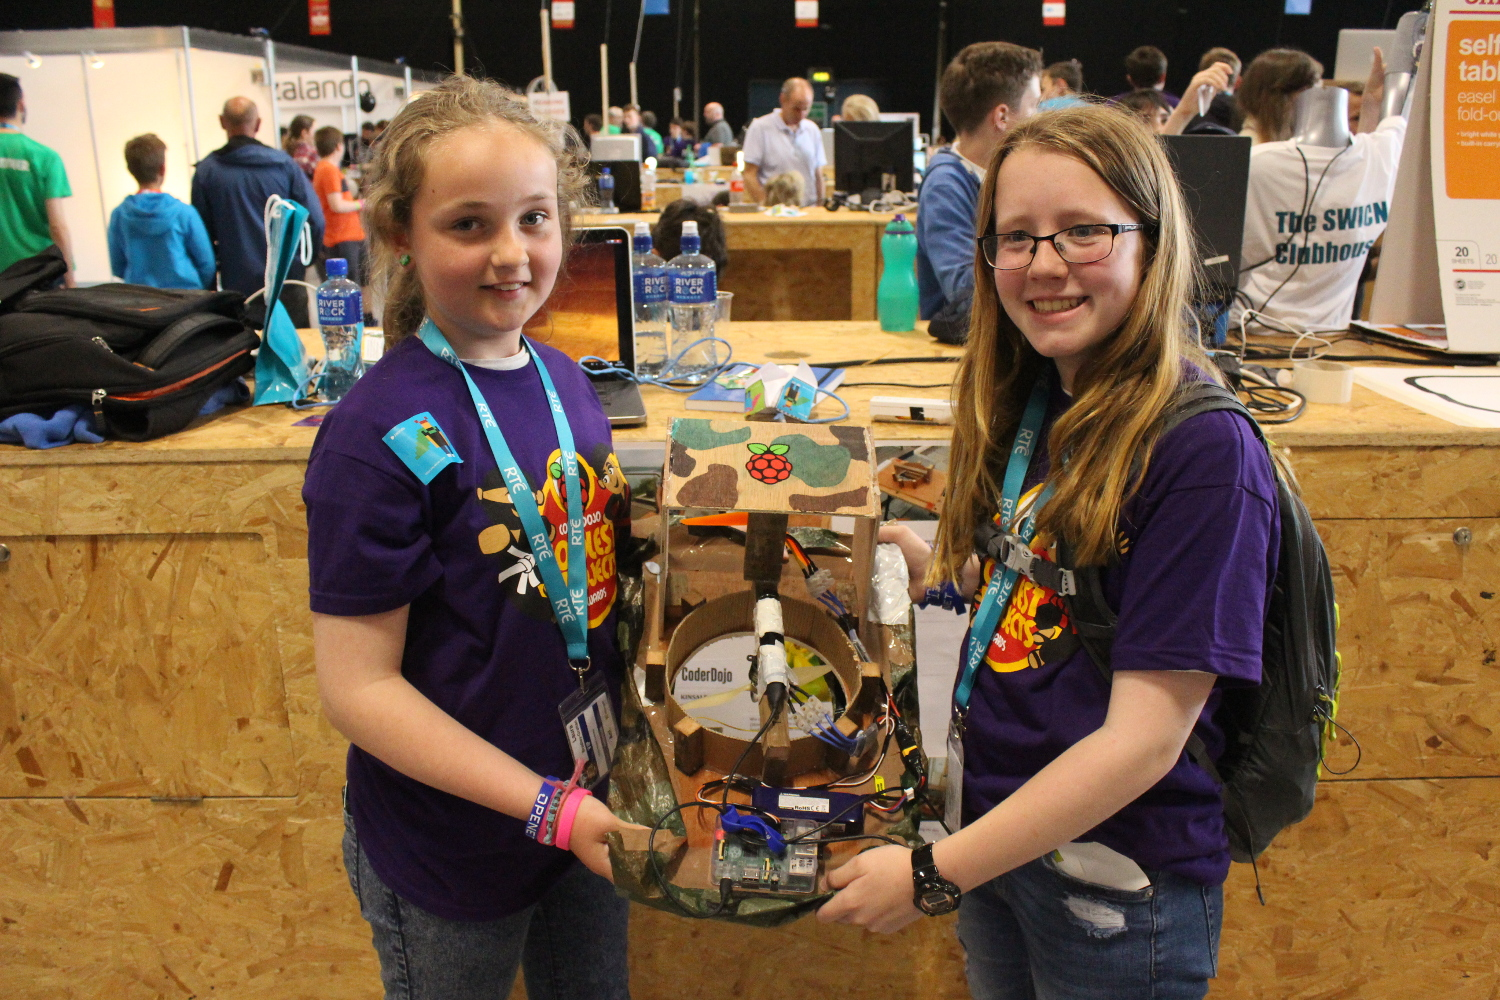 Coderdojo coolest projects prizes for carnival games